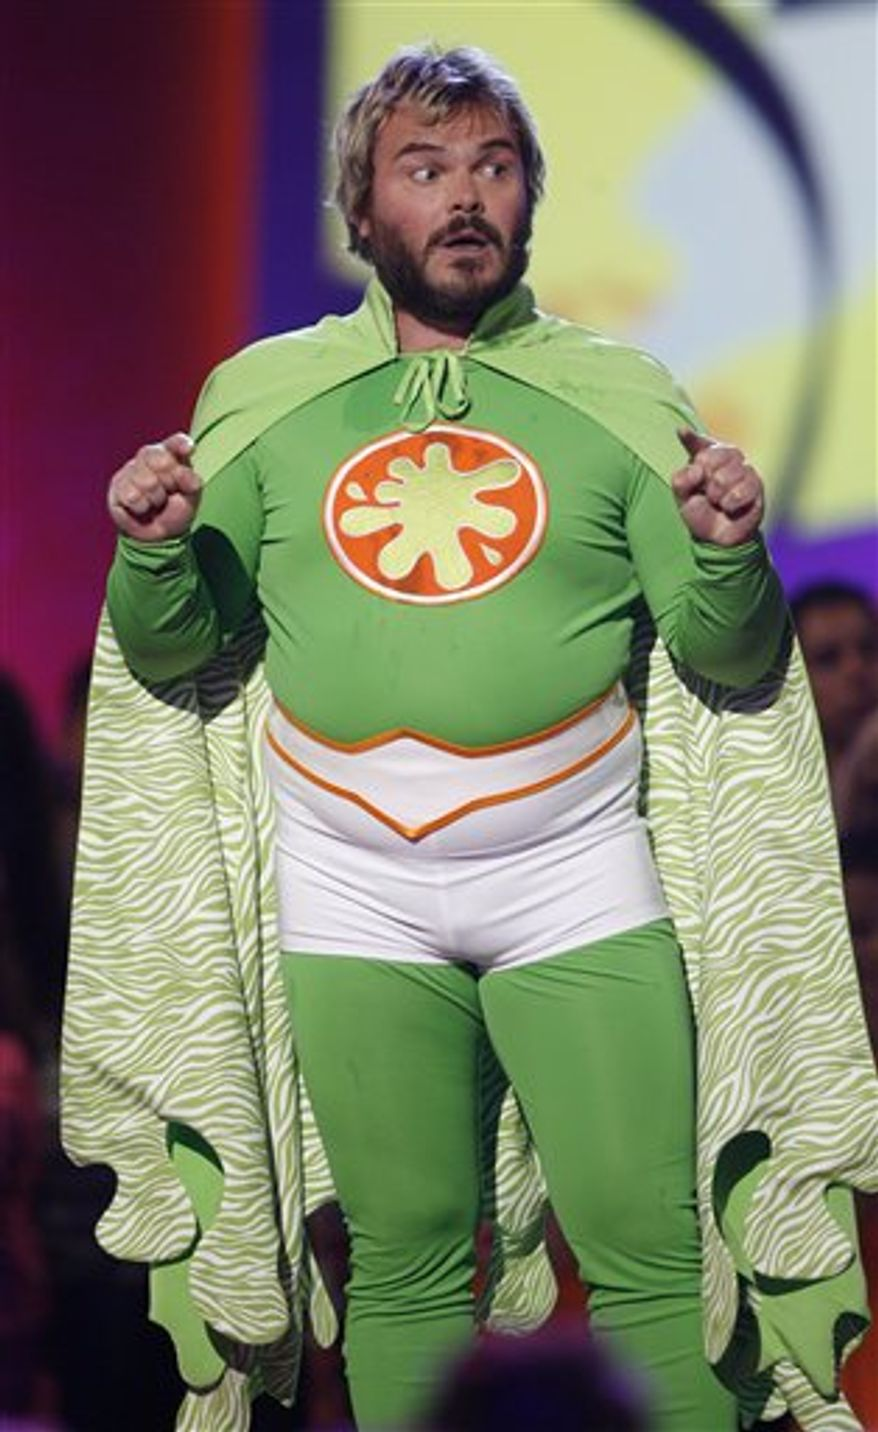 FILE - In this March 29, 2008 file photo, Jack Black hosts the 21st Annual Kids' Choice Awards in Los Angeles. Black will  return to host Nickelodeon's 2011 Kids' Choice Awards on Saturday, April 2, 2011. (AP Photo/Matt Sayles, file)